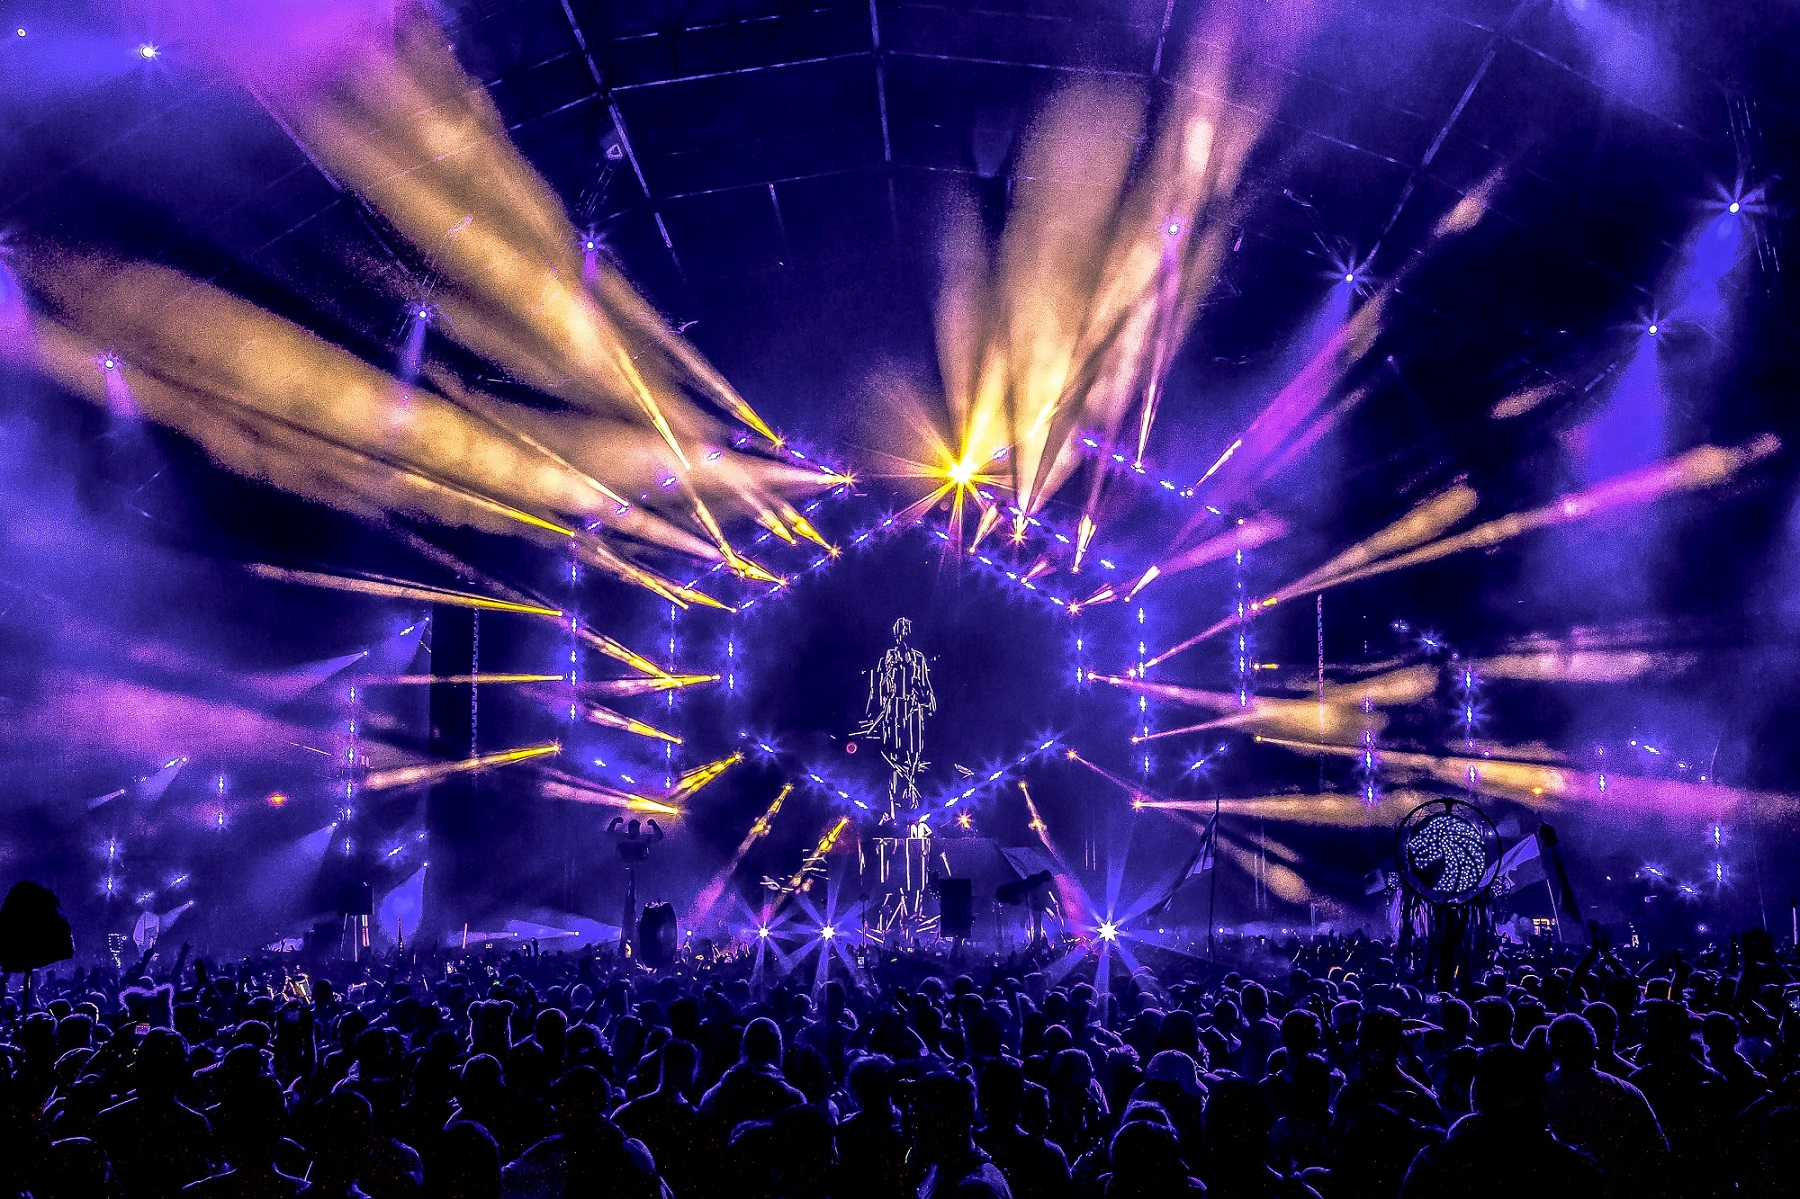 Elation Lighting For Circuit Grounds Stage At Electric